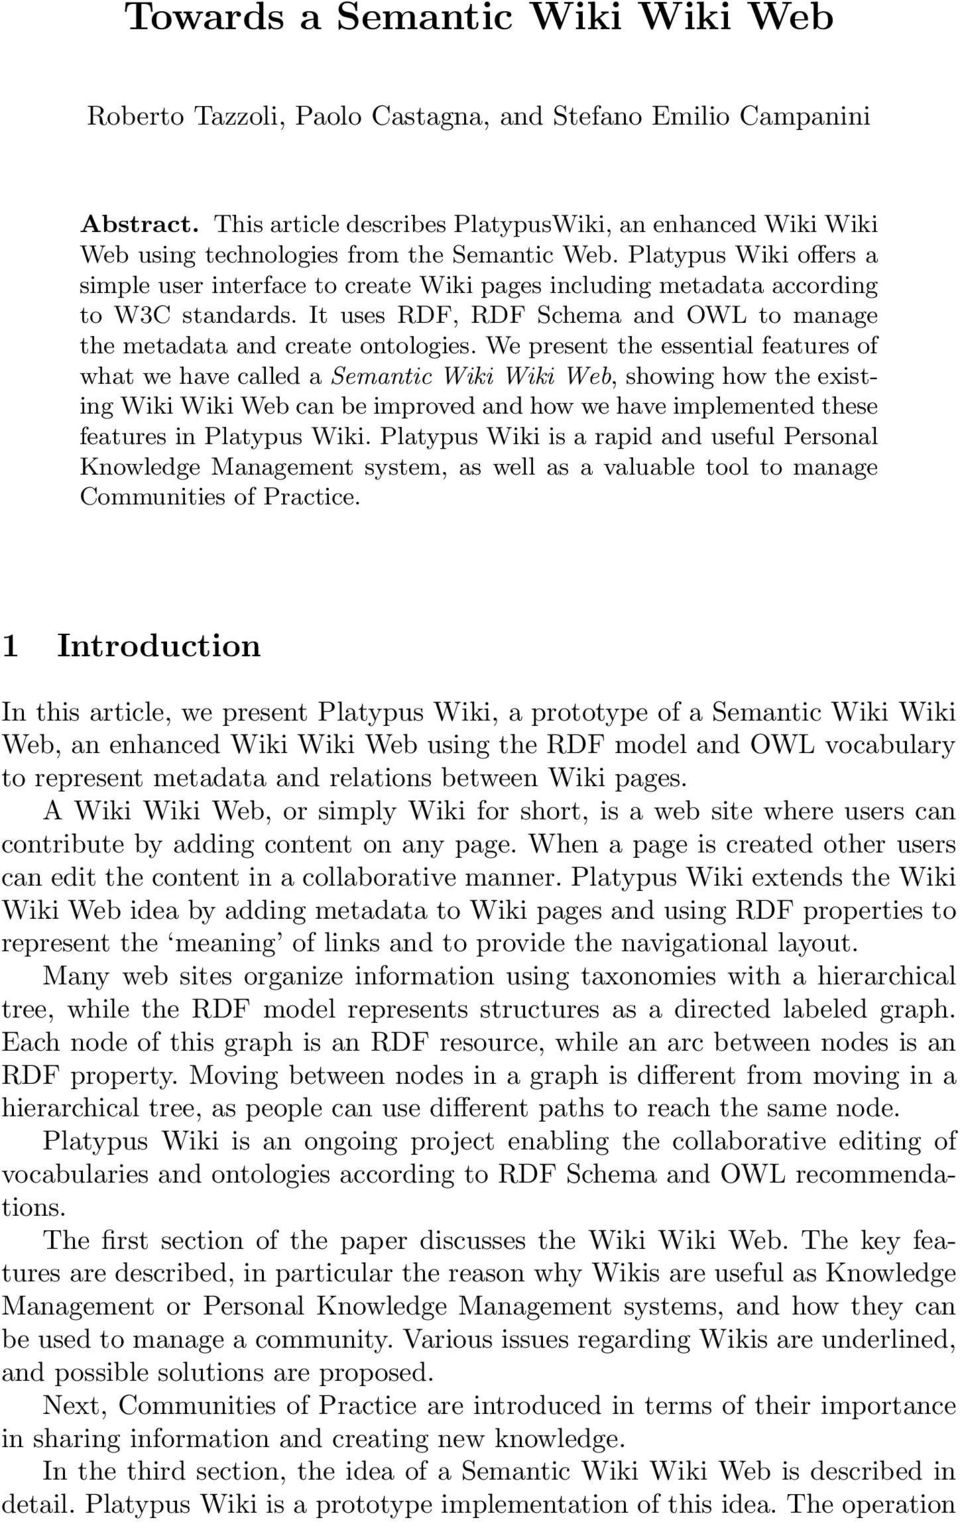 Platypus Wiki offers a simple user interface to create Wiki pages including metadata according to W3C standards. It uses RDF, RDF Schema and OWL to manage the metadata and create ontologies.